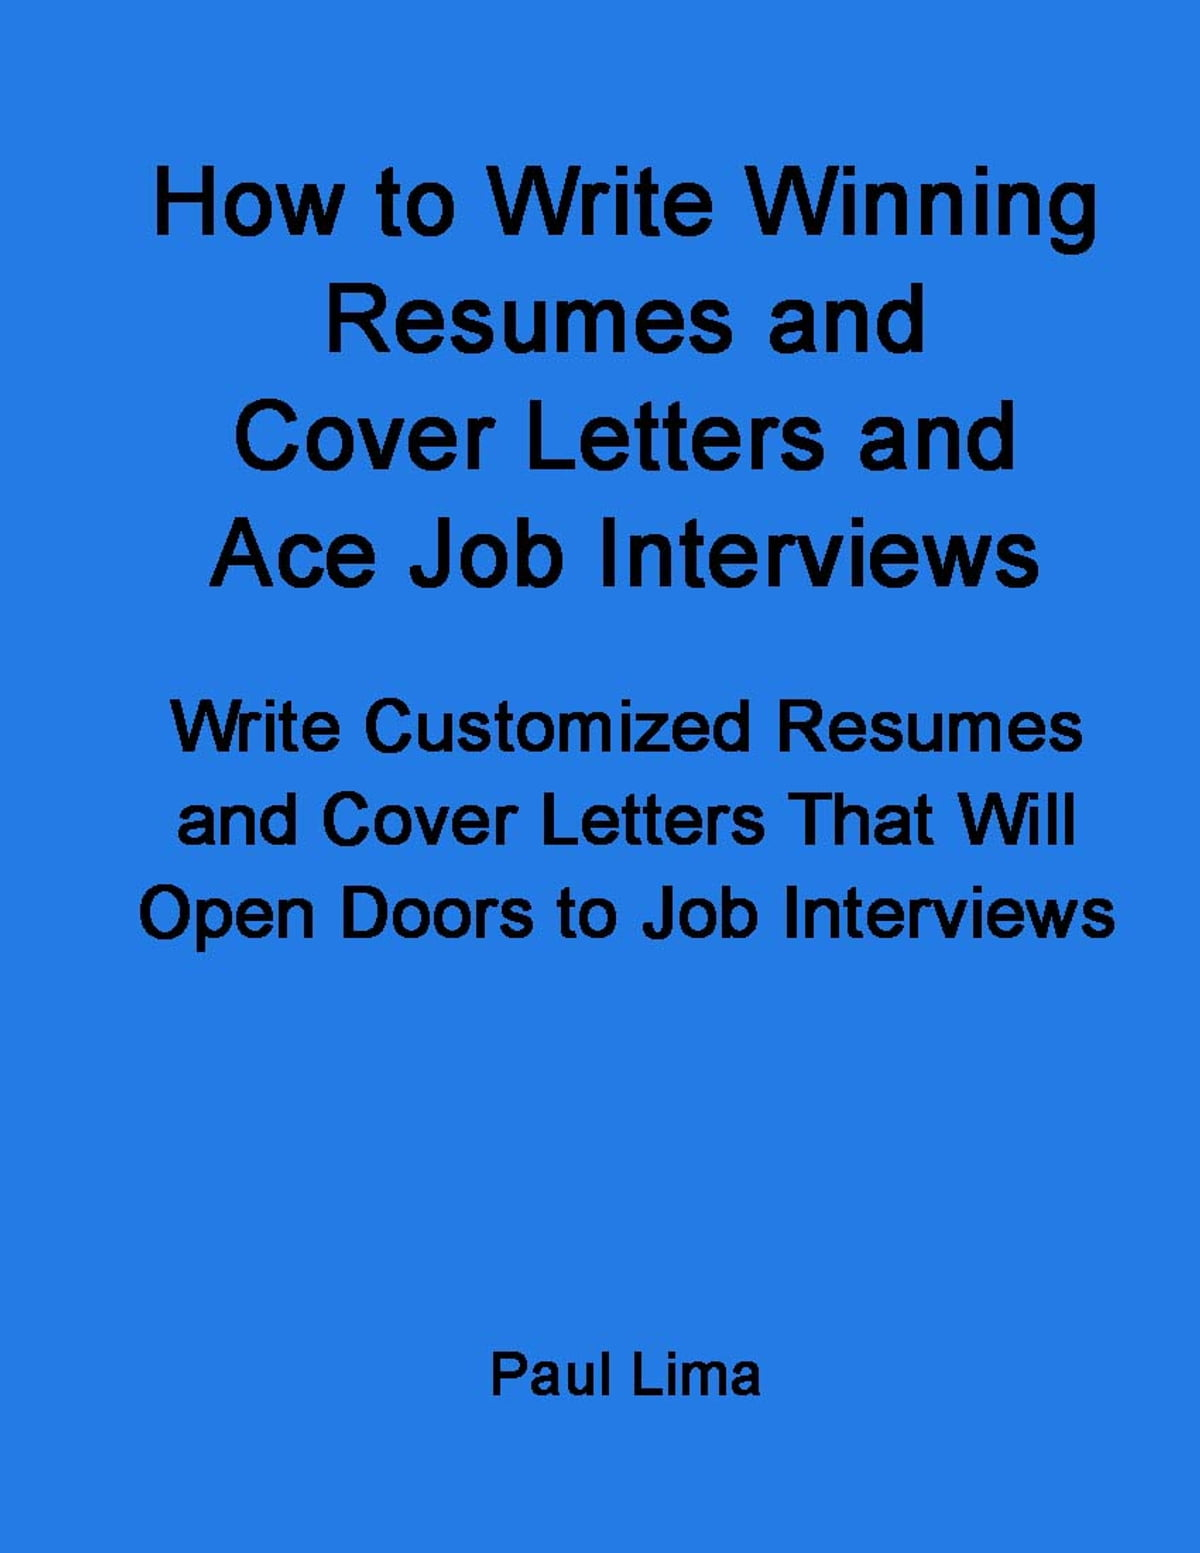 How to Write Winning Resumes and Cover Letters and Ace Job Interviews ebook  by Paul Lima - Rakuten Kobo